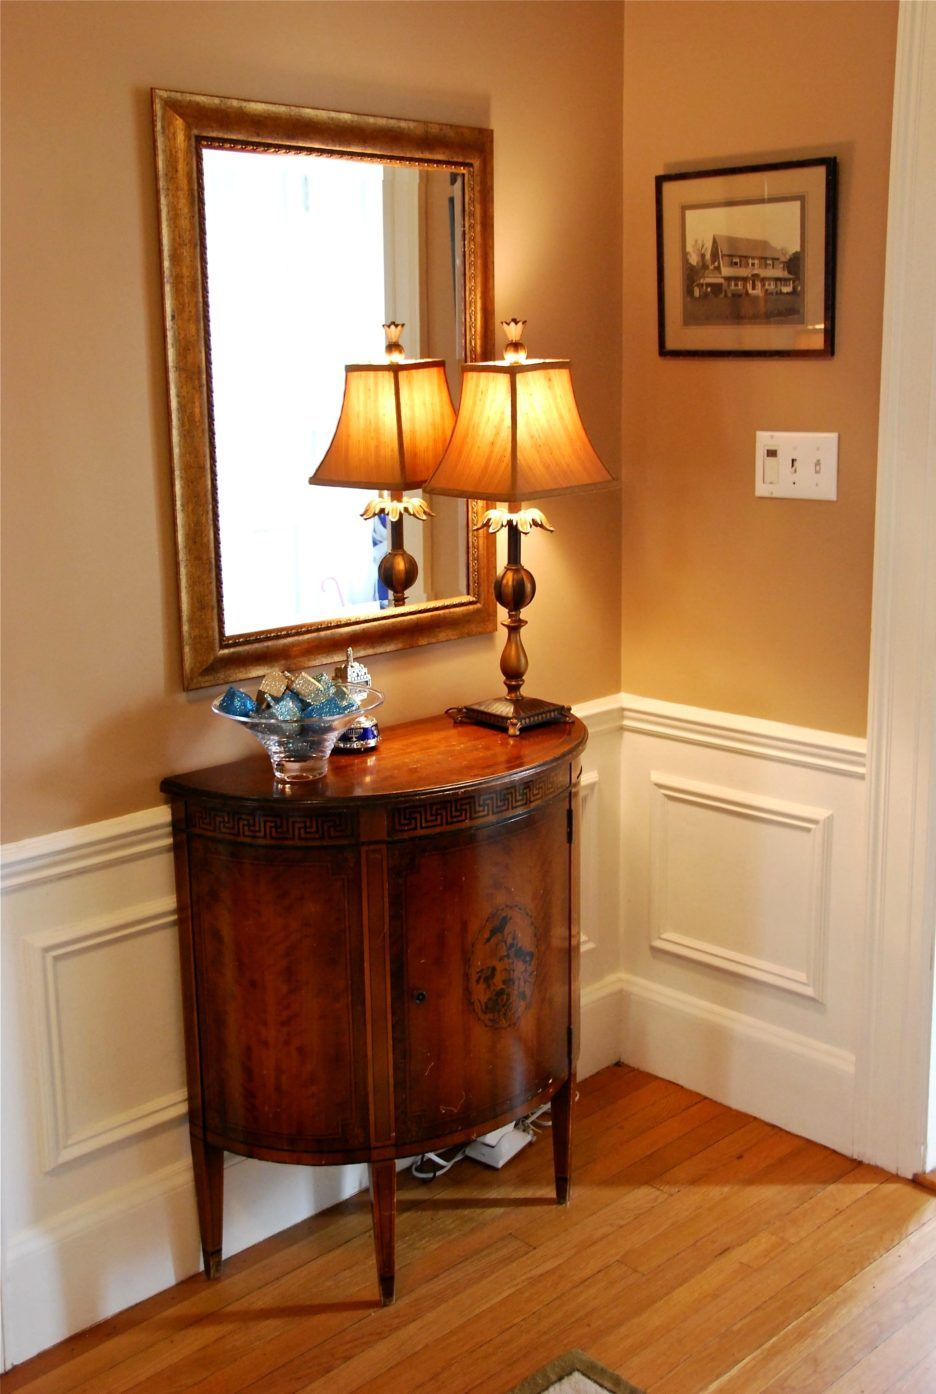 Furniture. Small Foyer Table Ideas, Gold Bulb Table Lamp, Mirror. Remodel  And